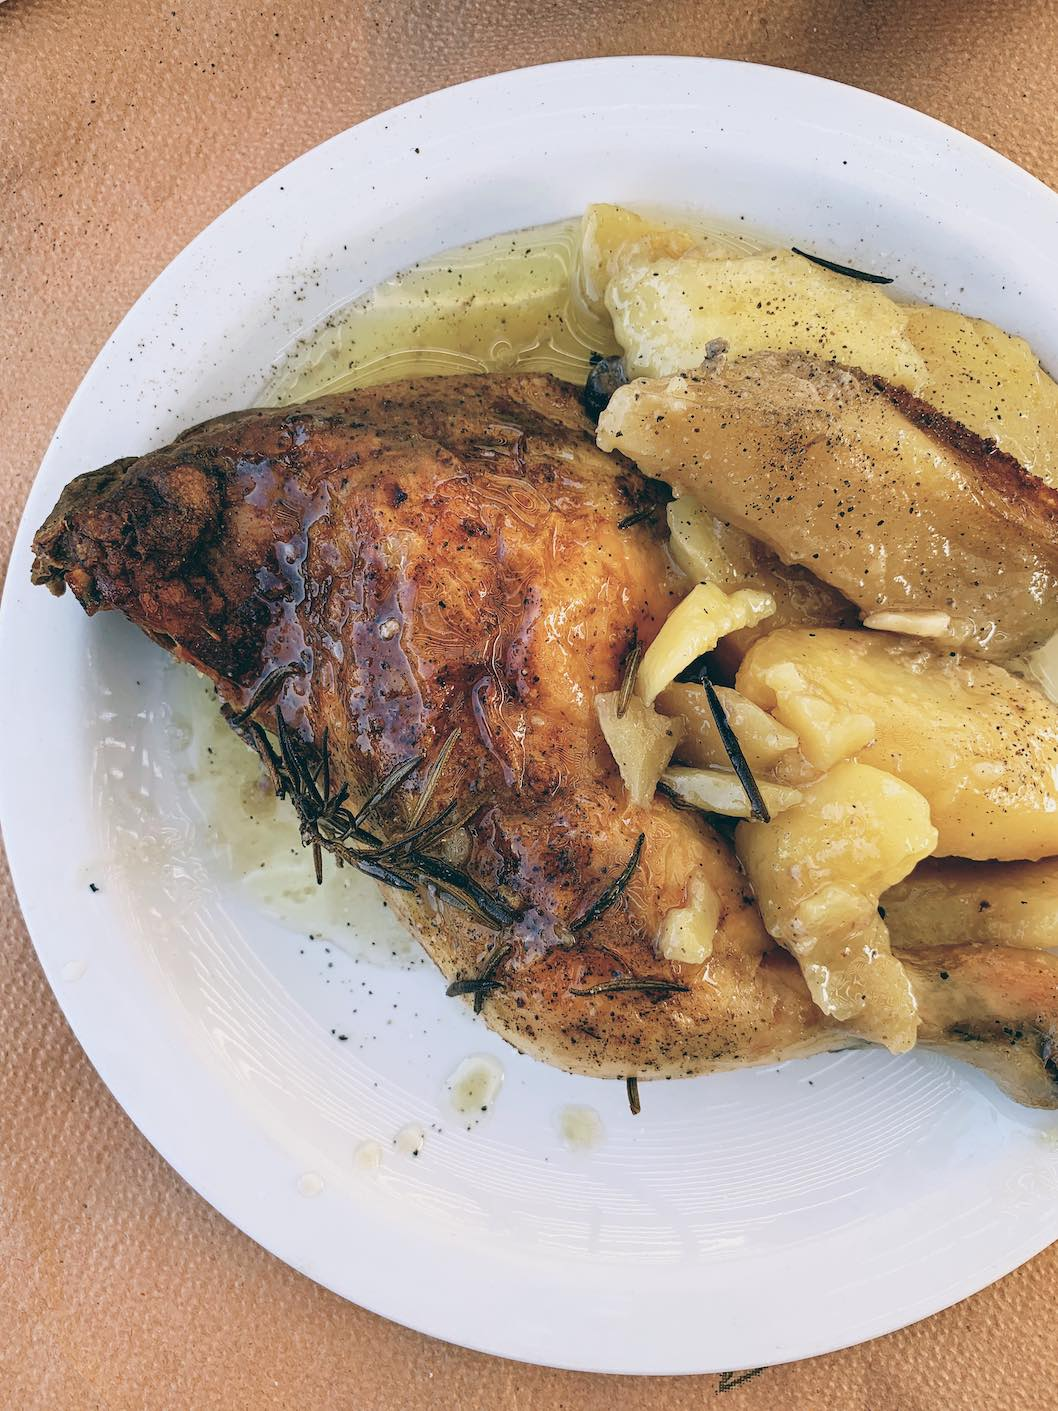 Oven baked chicken at To Steki tou Machera in Asfontylitis